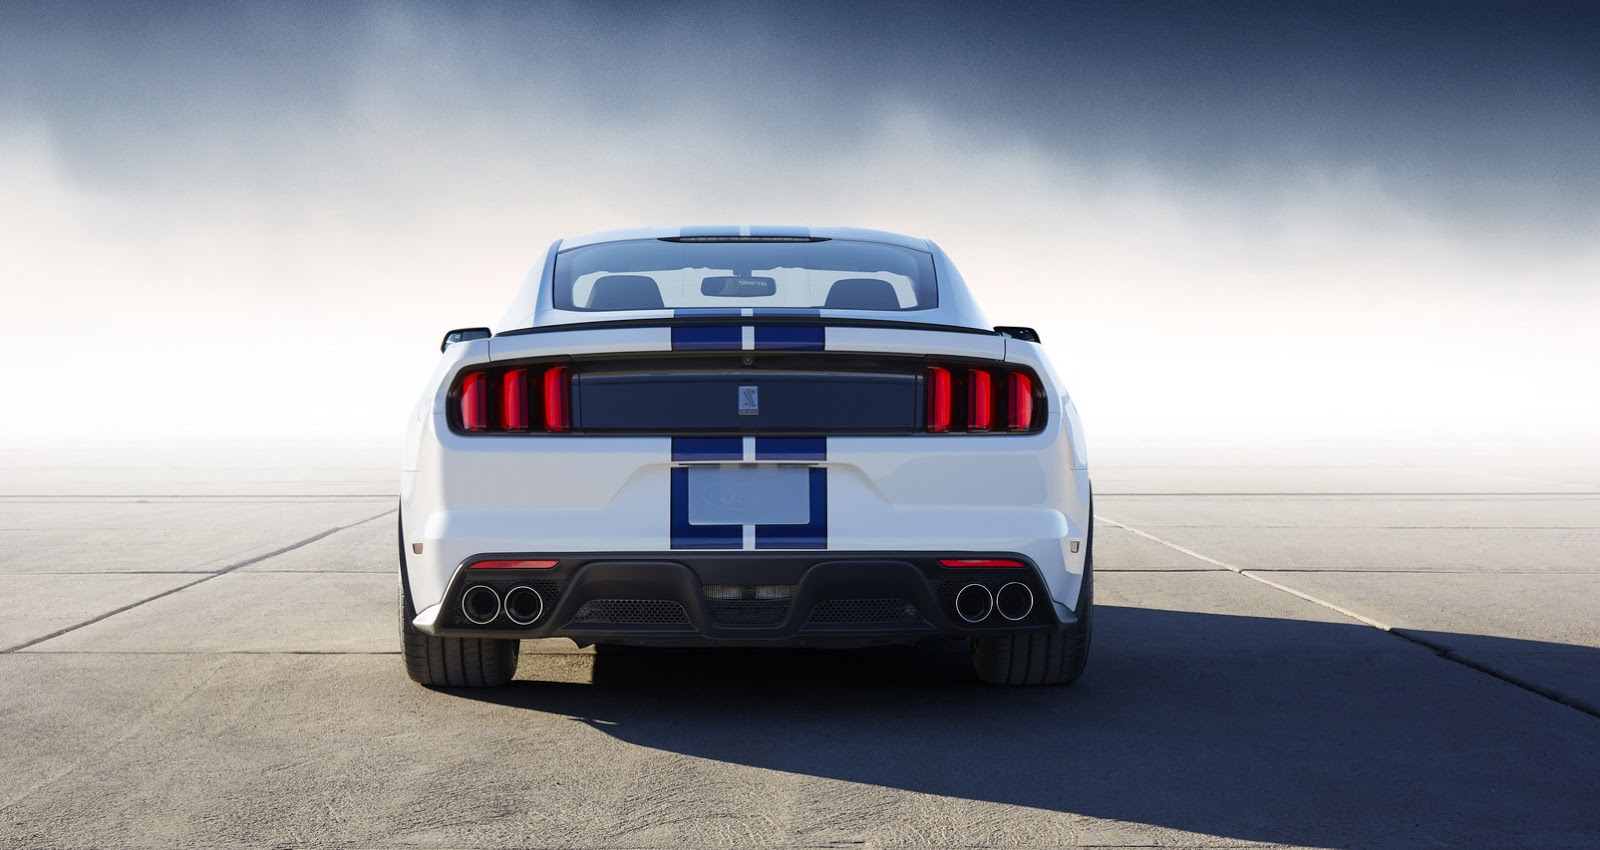 New-Ford-Mustang-Shelby-GT350-36.jpg